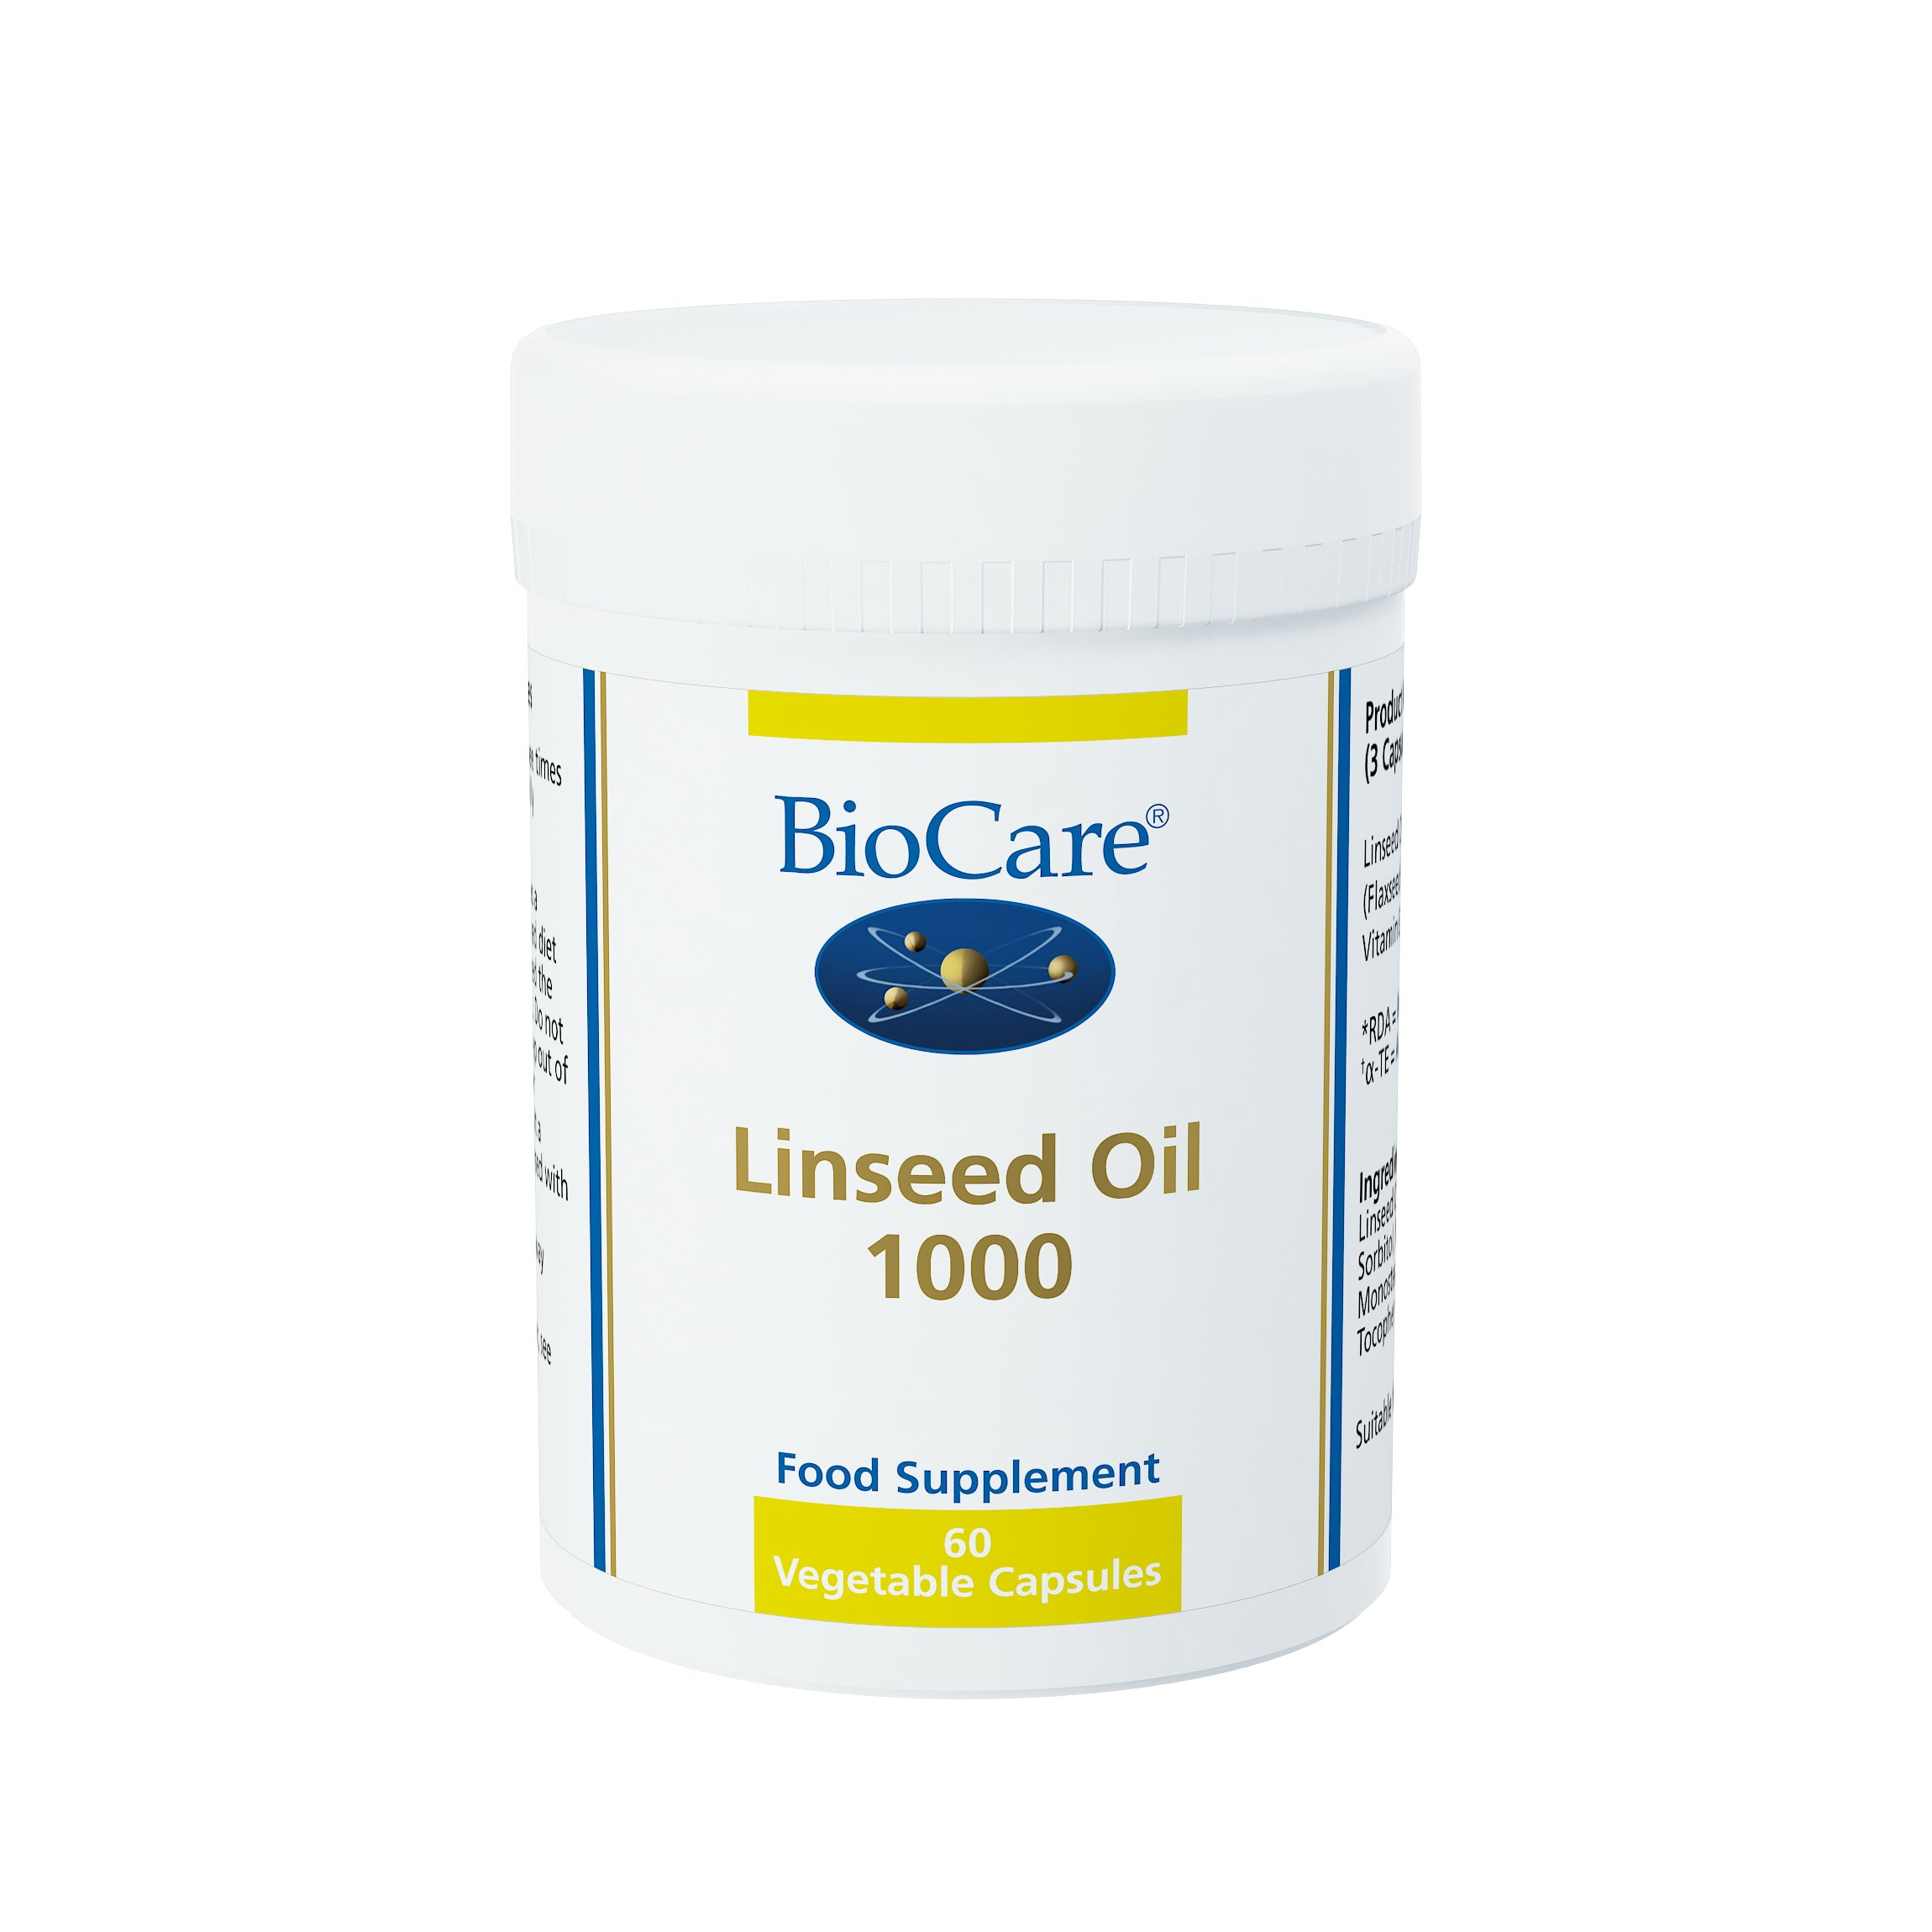 Biocare Linseed Oil 1000mg (flaxseed oil), 60 gel capsules